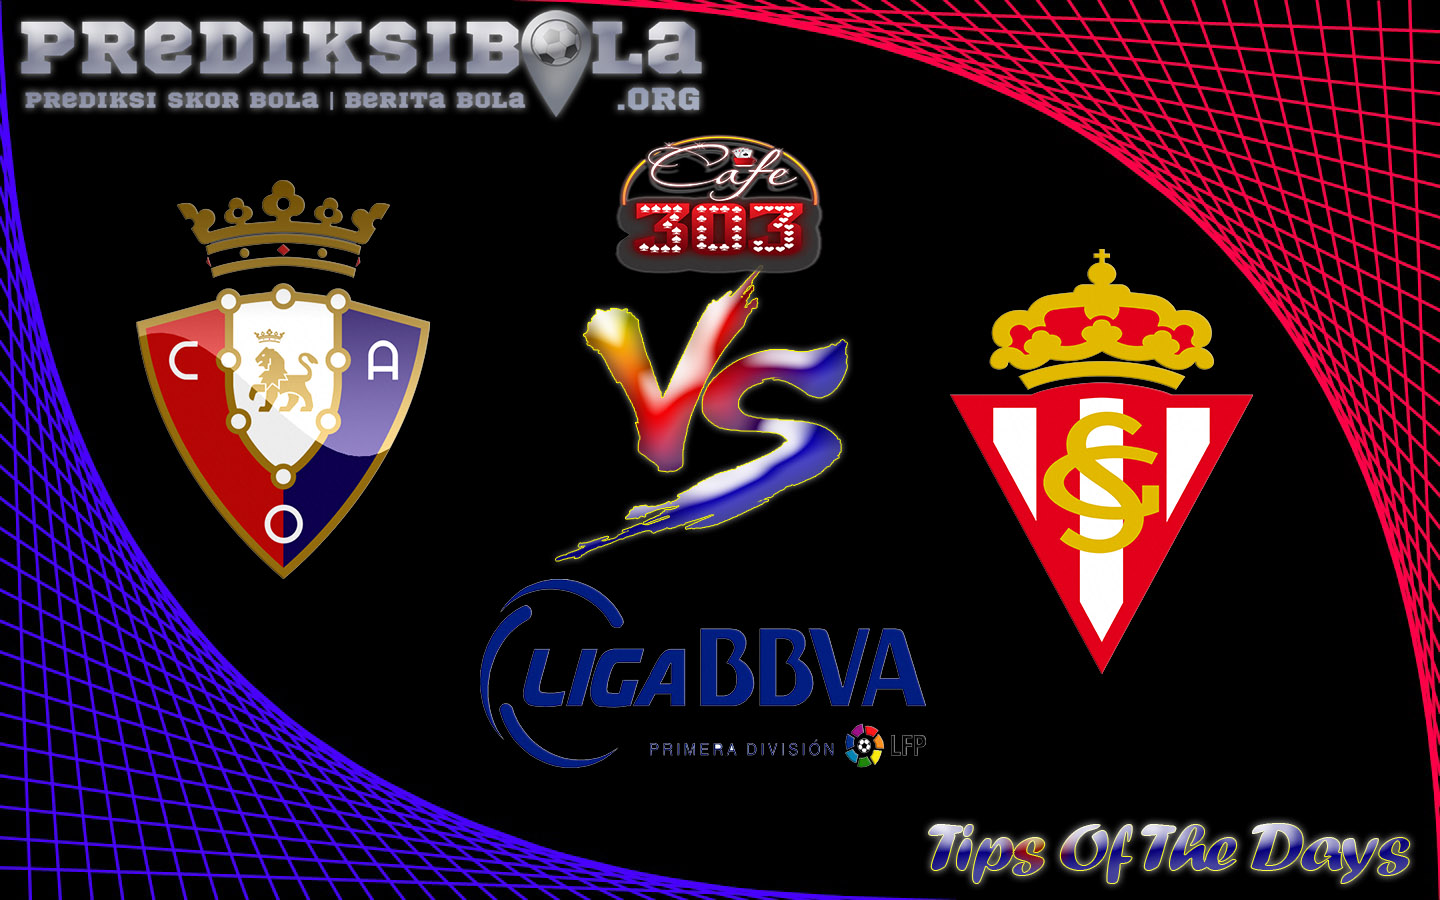 Prediksi Skor Osasuna Vs Sporting Gijon 22 April 2017